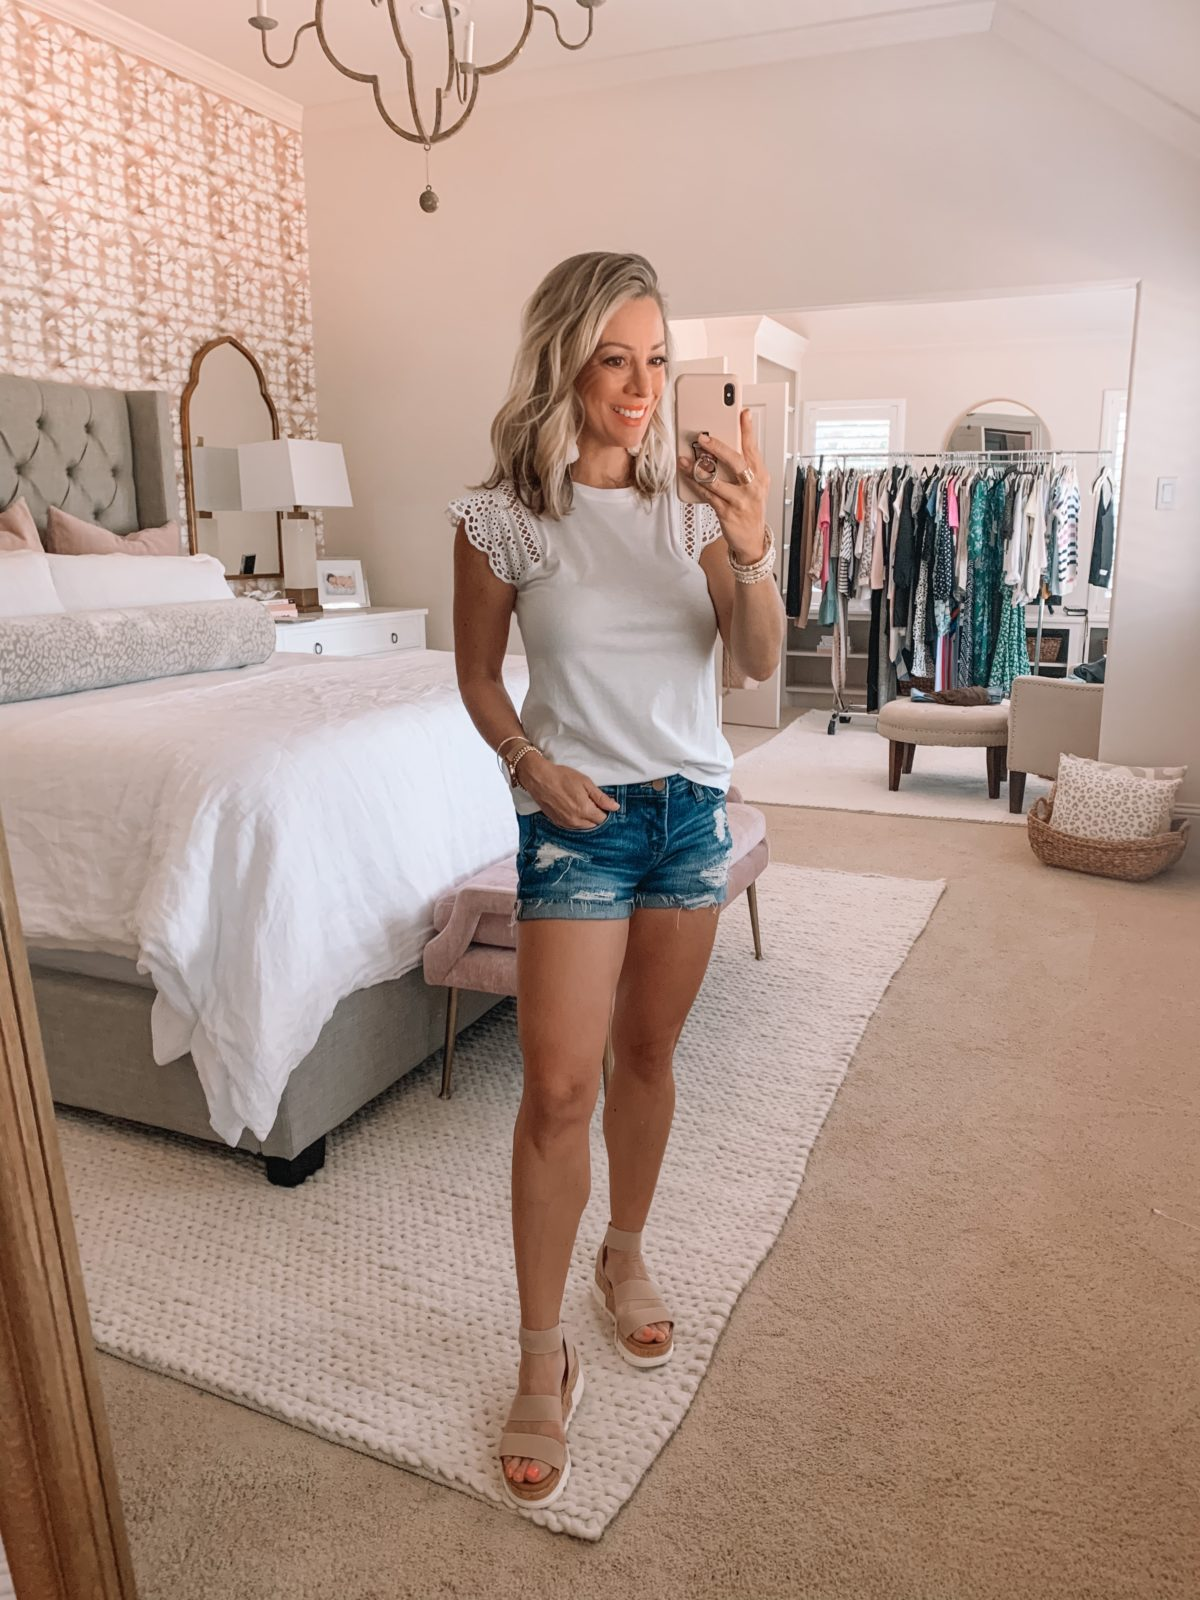 Summer outfit - jean shorts and white tee